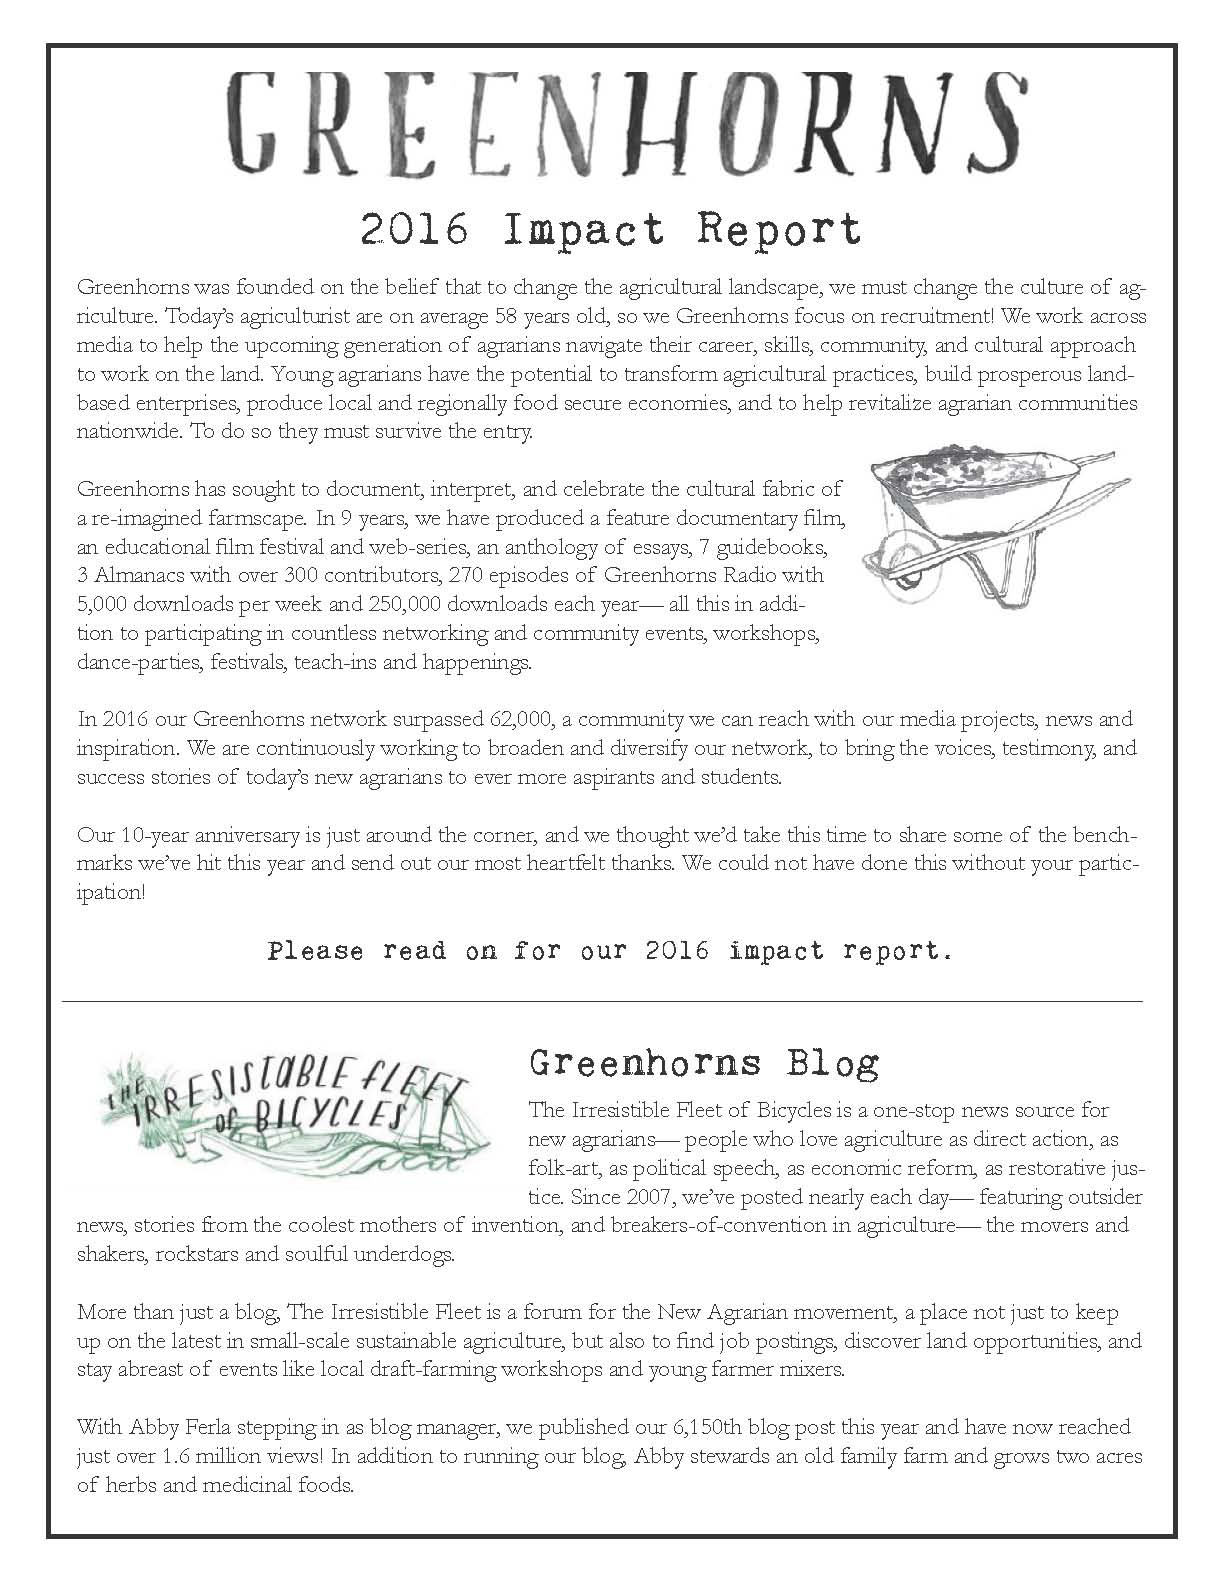 greenhorns-impact-report-2016-final_page_1